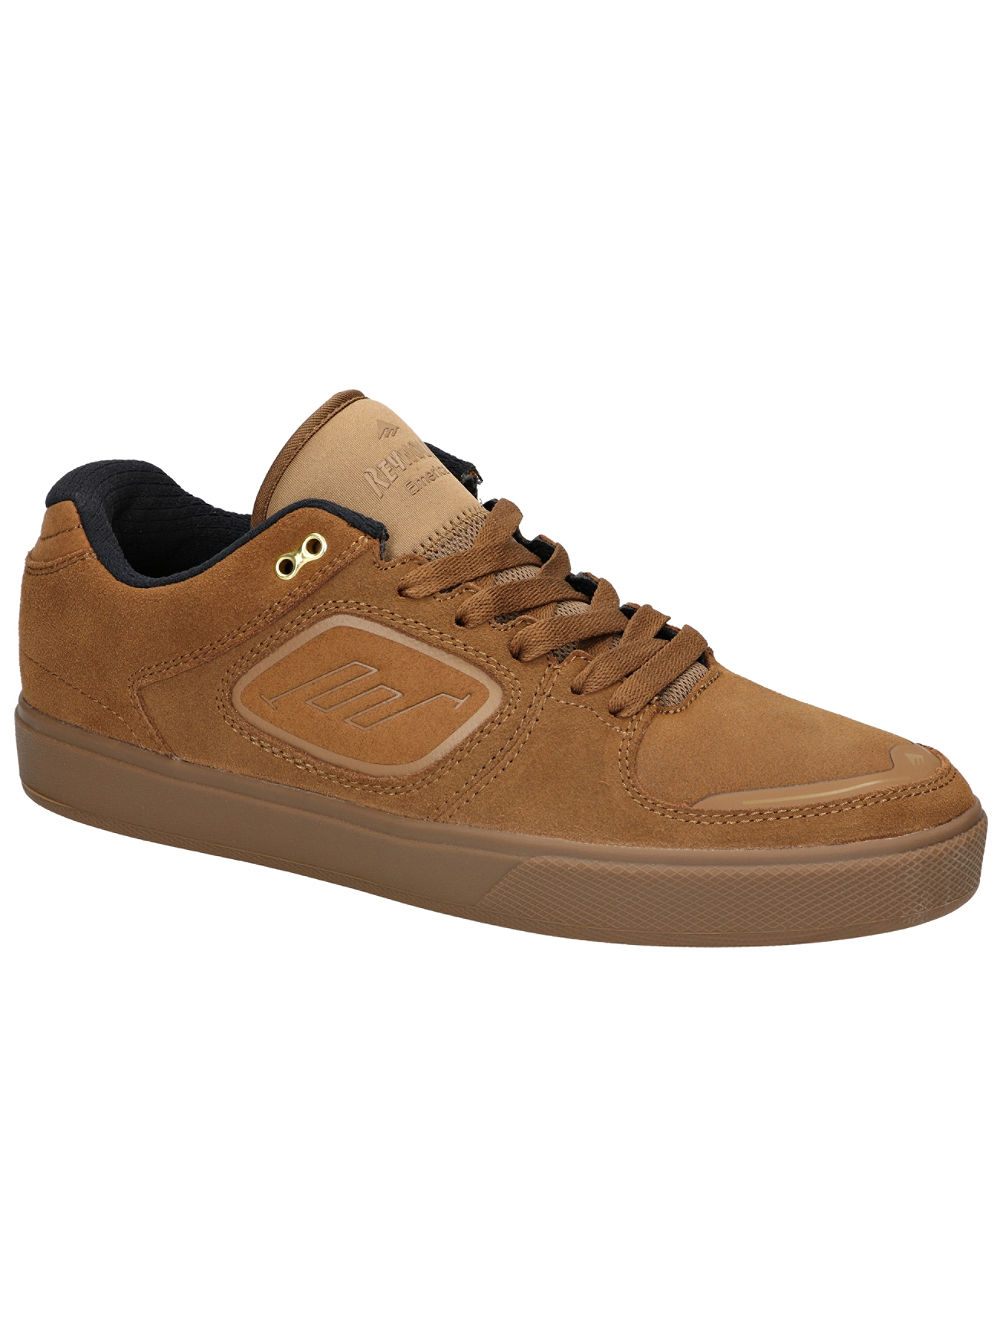 Reynolds G6 Skate Shoes